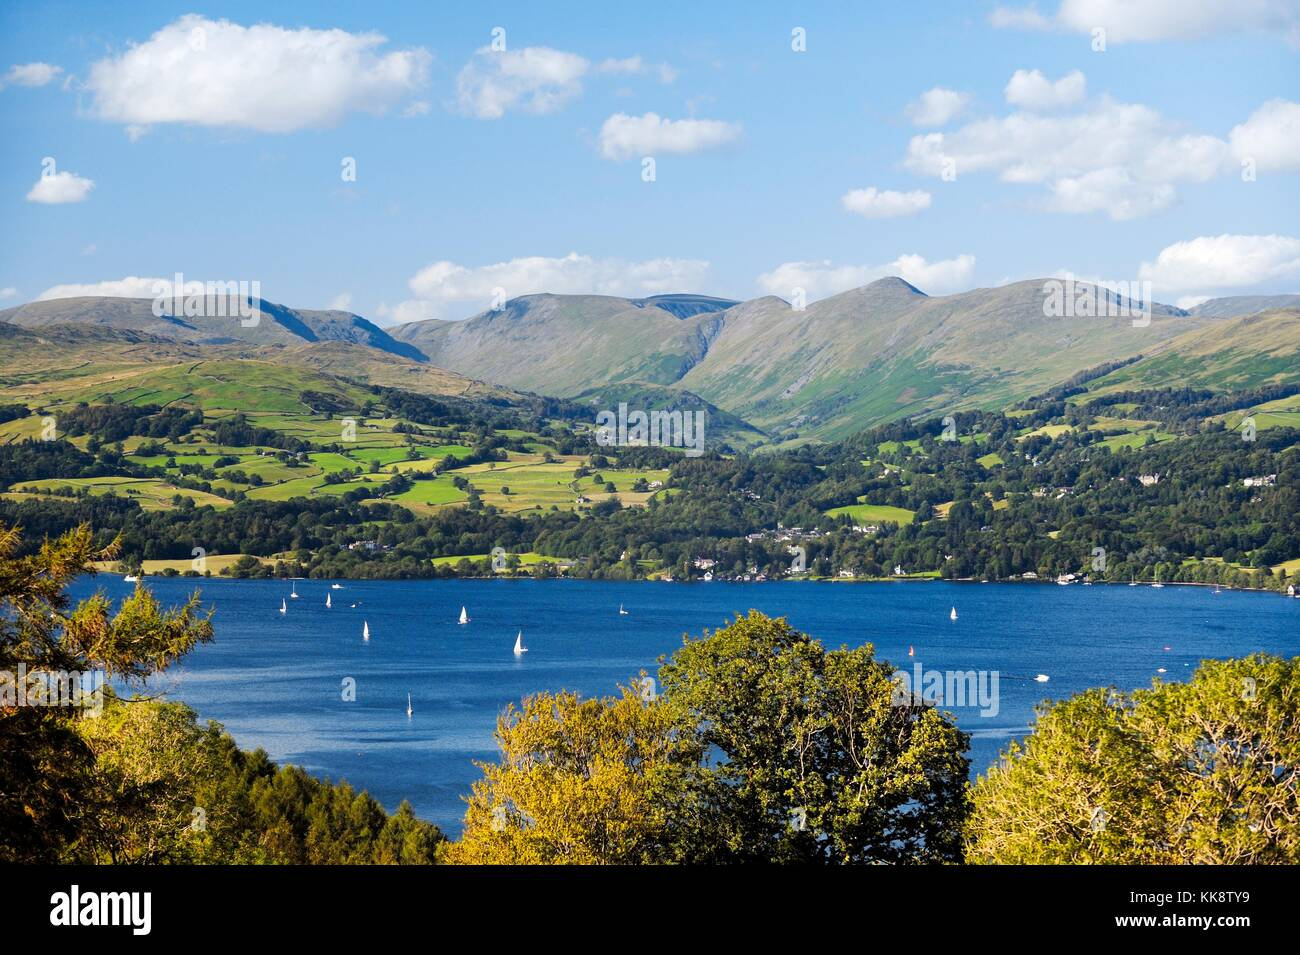 Lake District National Park, Cumbria, England. N.E over Windermere to the Wansfell and Ill Bell fells above Troutbeck - Stock Image